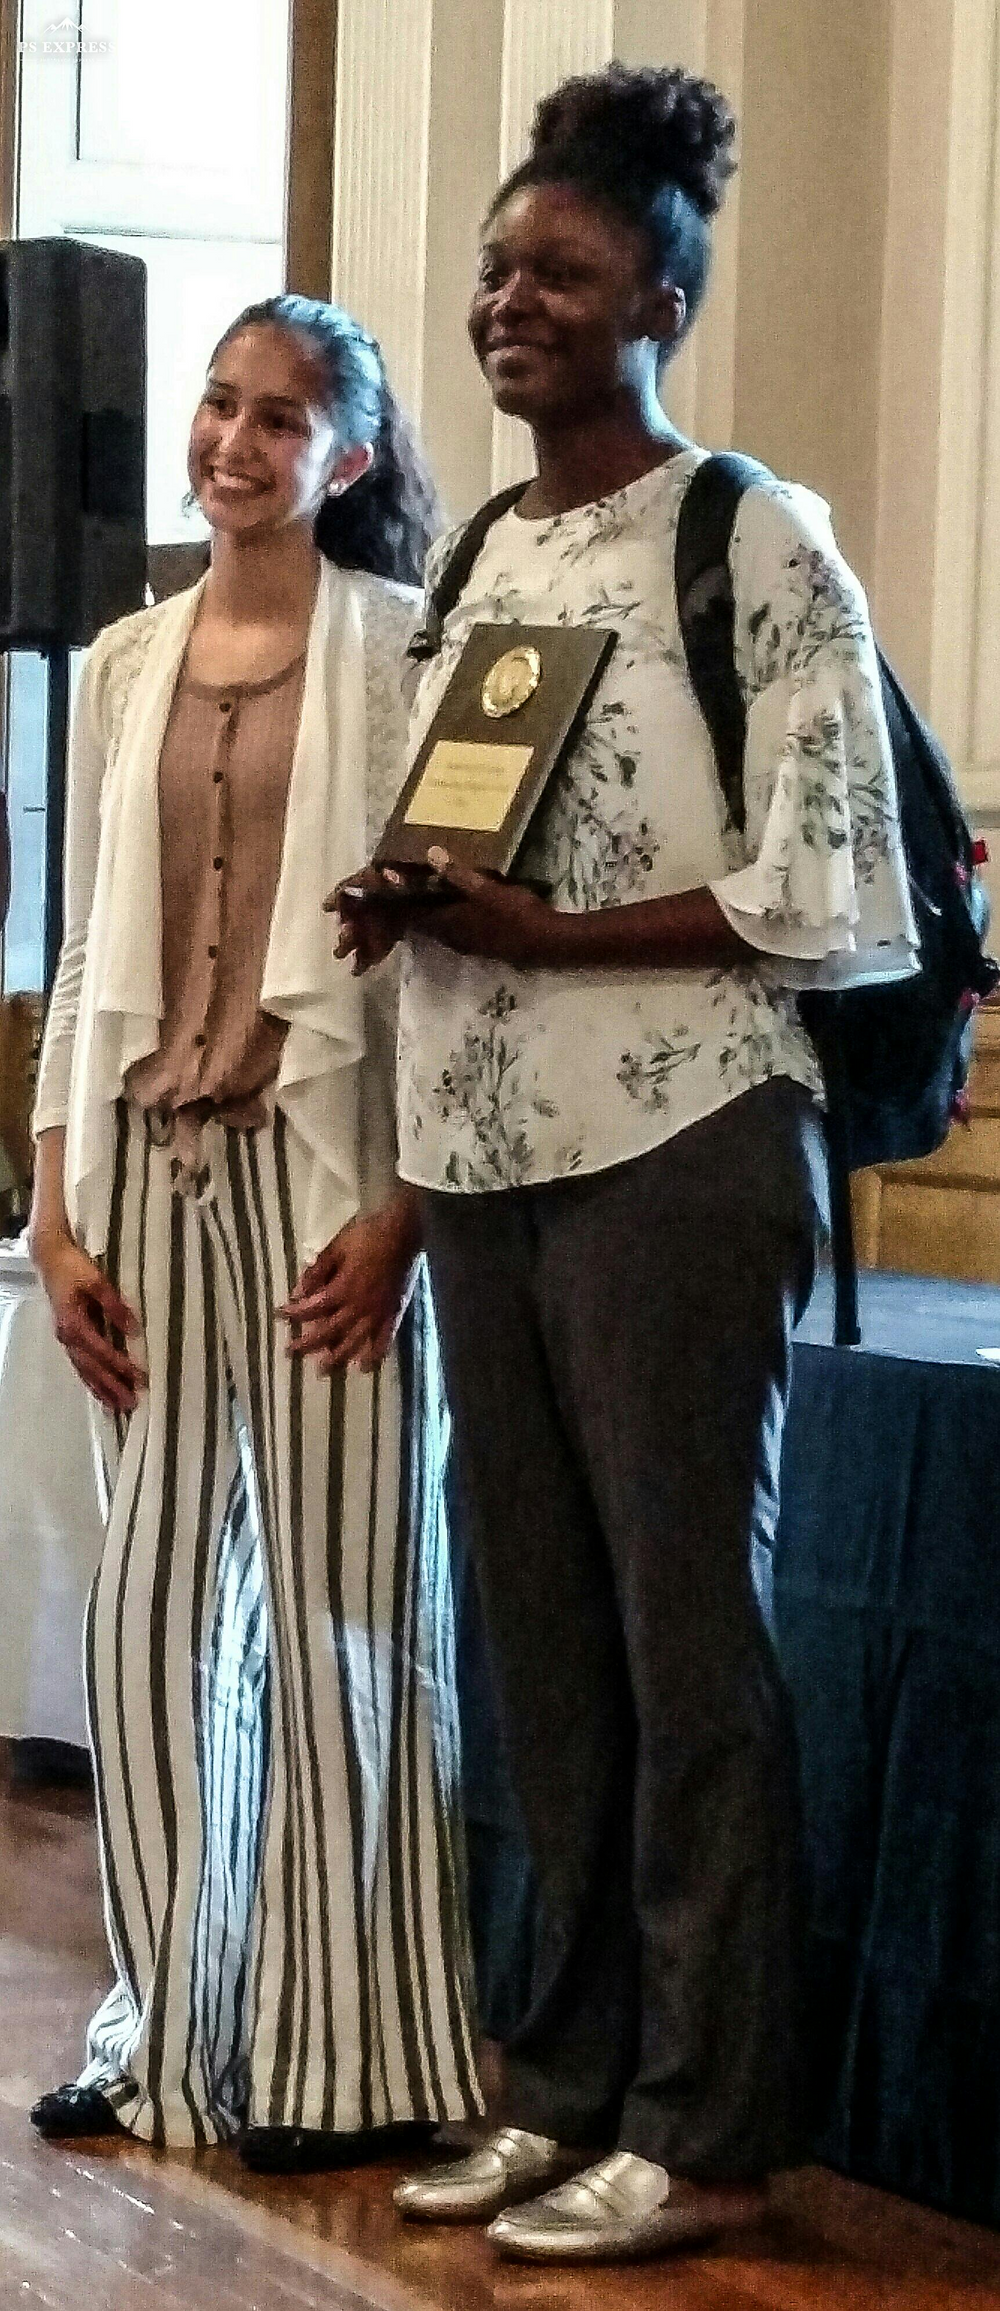 Last year's winner, Asha Verma, gives out the 5th Matthew Ornstein Outstanding Debater Award